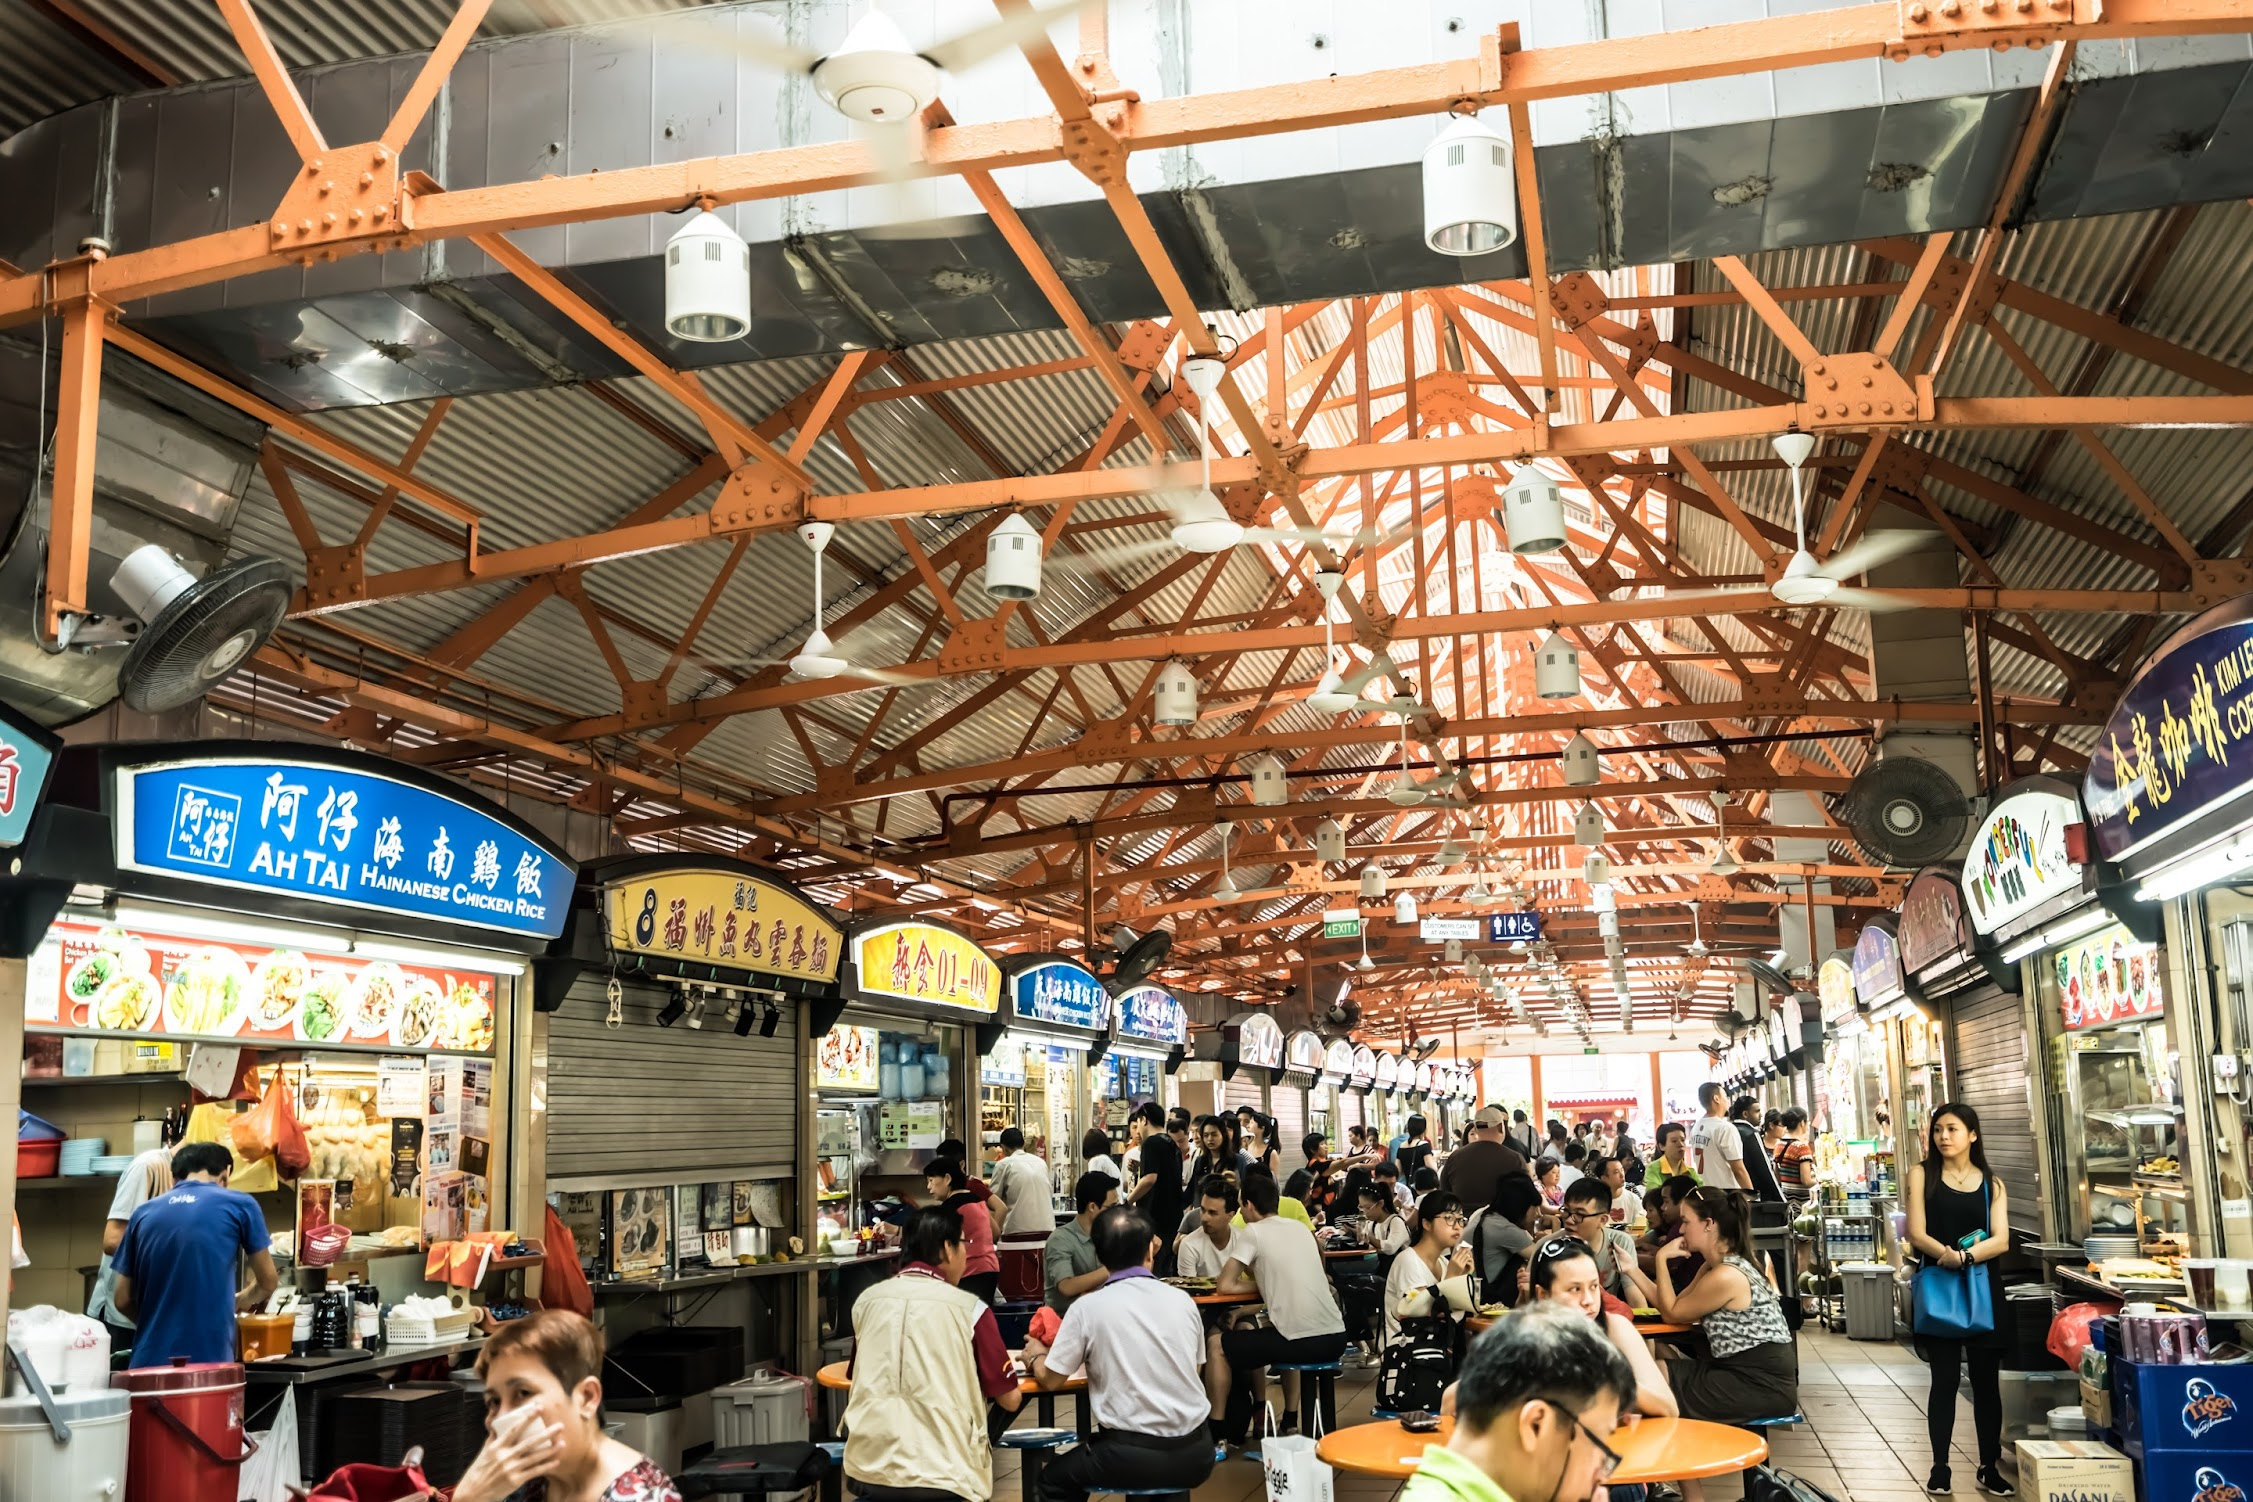 Singapore Maxwell Food Centre1